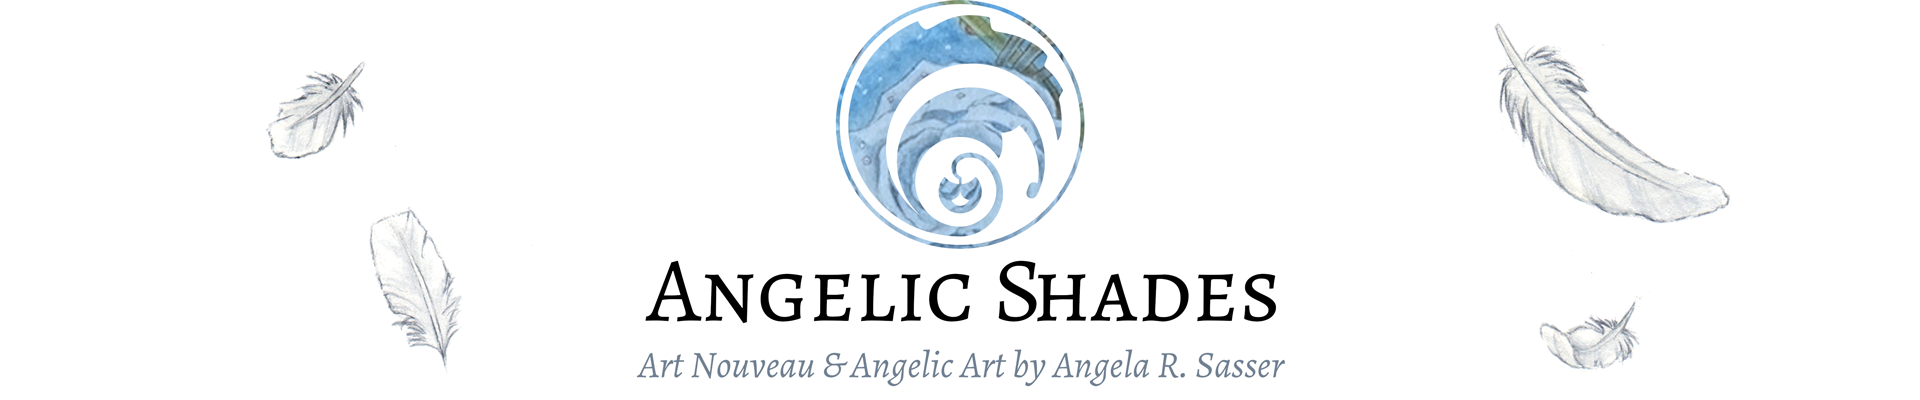 Angelic Shades – Fine Art Paintings by Angela R. Sasser